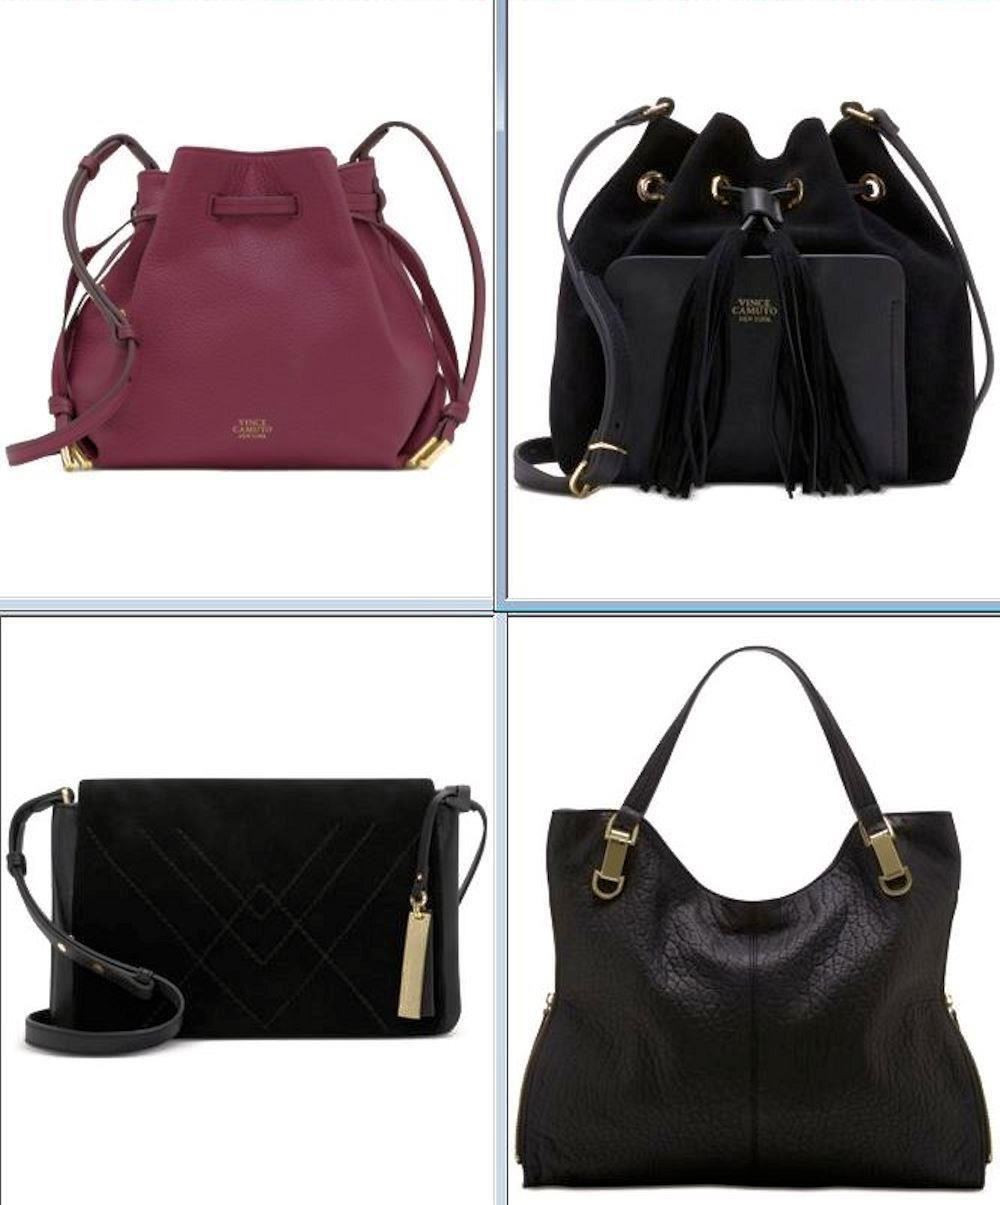 6ee5cf907f2 ... Designer Handbags Purses Accessories Brand New Manifested Kors Calvin  Klein Patricia Nash More. Price: $2,618.00. Image 1